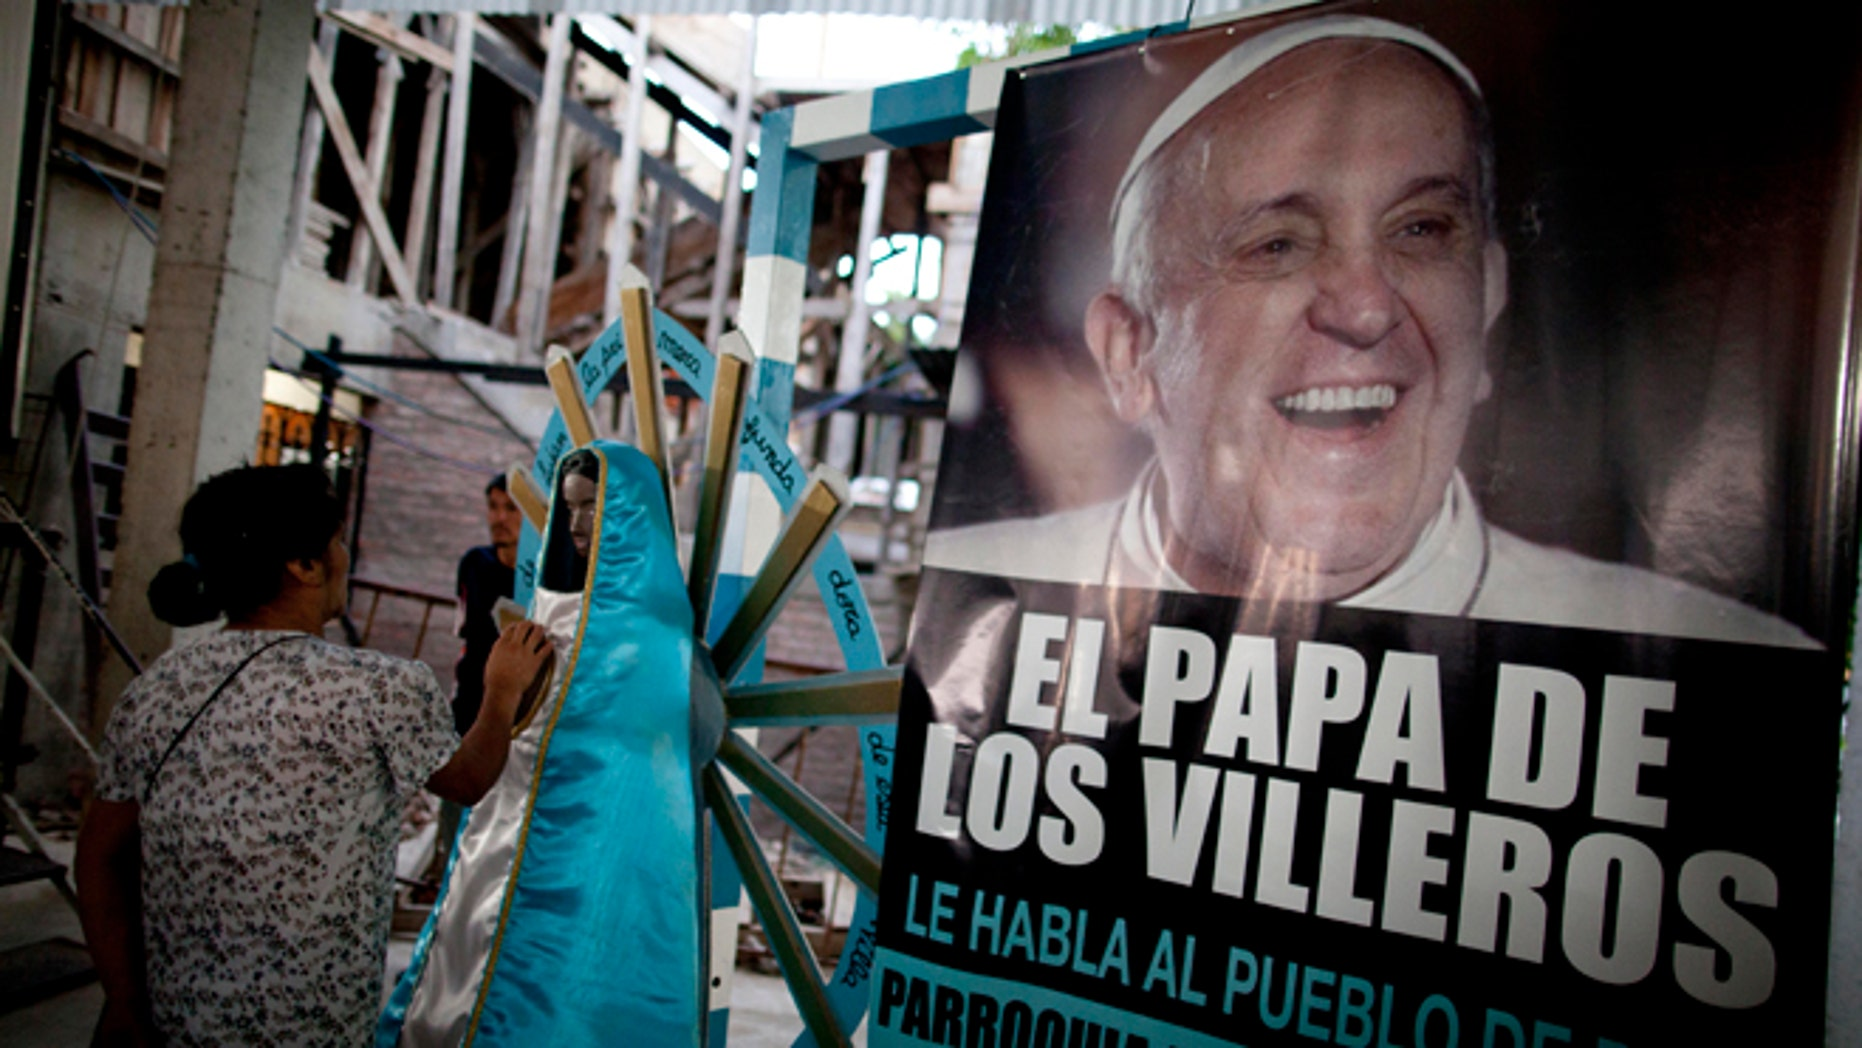 """A woman touches a religious figure beside a banner of Pope Francis reading in Spanish, """"The Pope of the people of the slum"""" as she attends a mass in his honor at the 1-11-14 slum's church in Buenos Aires, Argentina, Thursday, March 13, 2014. On the day of the first anniversary of the Pope's election, people from the 1-11-14 slum gather at their church to watch an interview that Pope Francis gave recently from his residence at the Vatican to FM Bajo Flores, a community radio station that broadcasts from the slum. (AP Photo/Natacha Pisarenko)"""